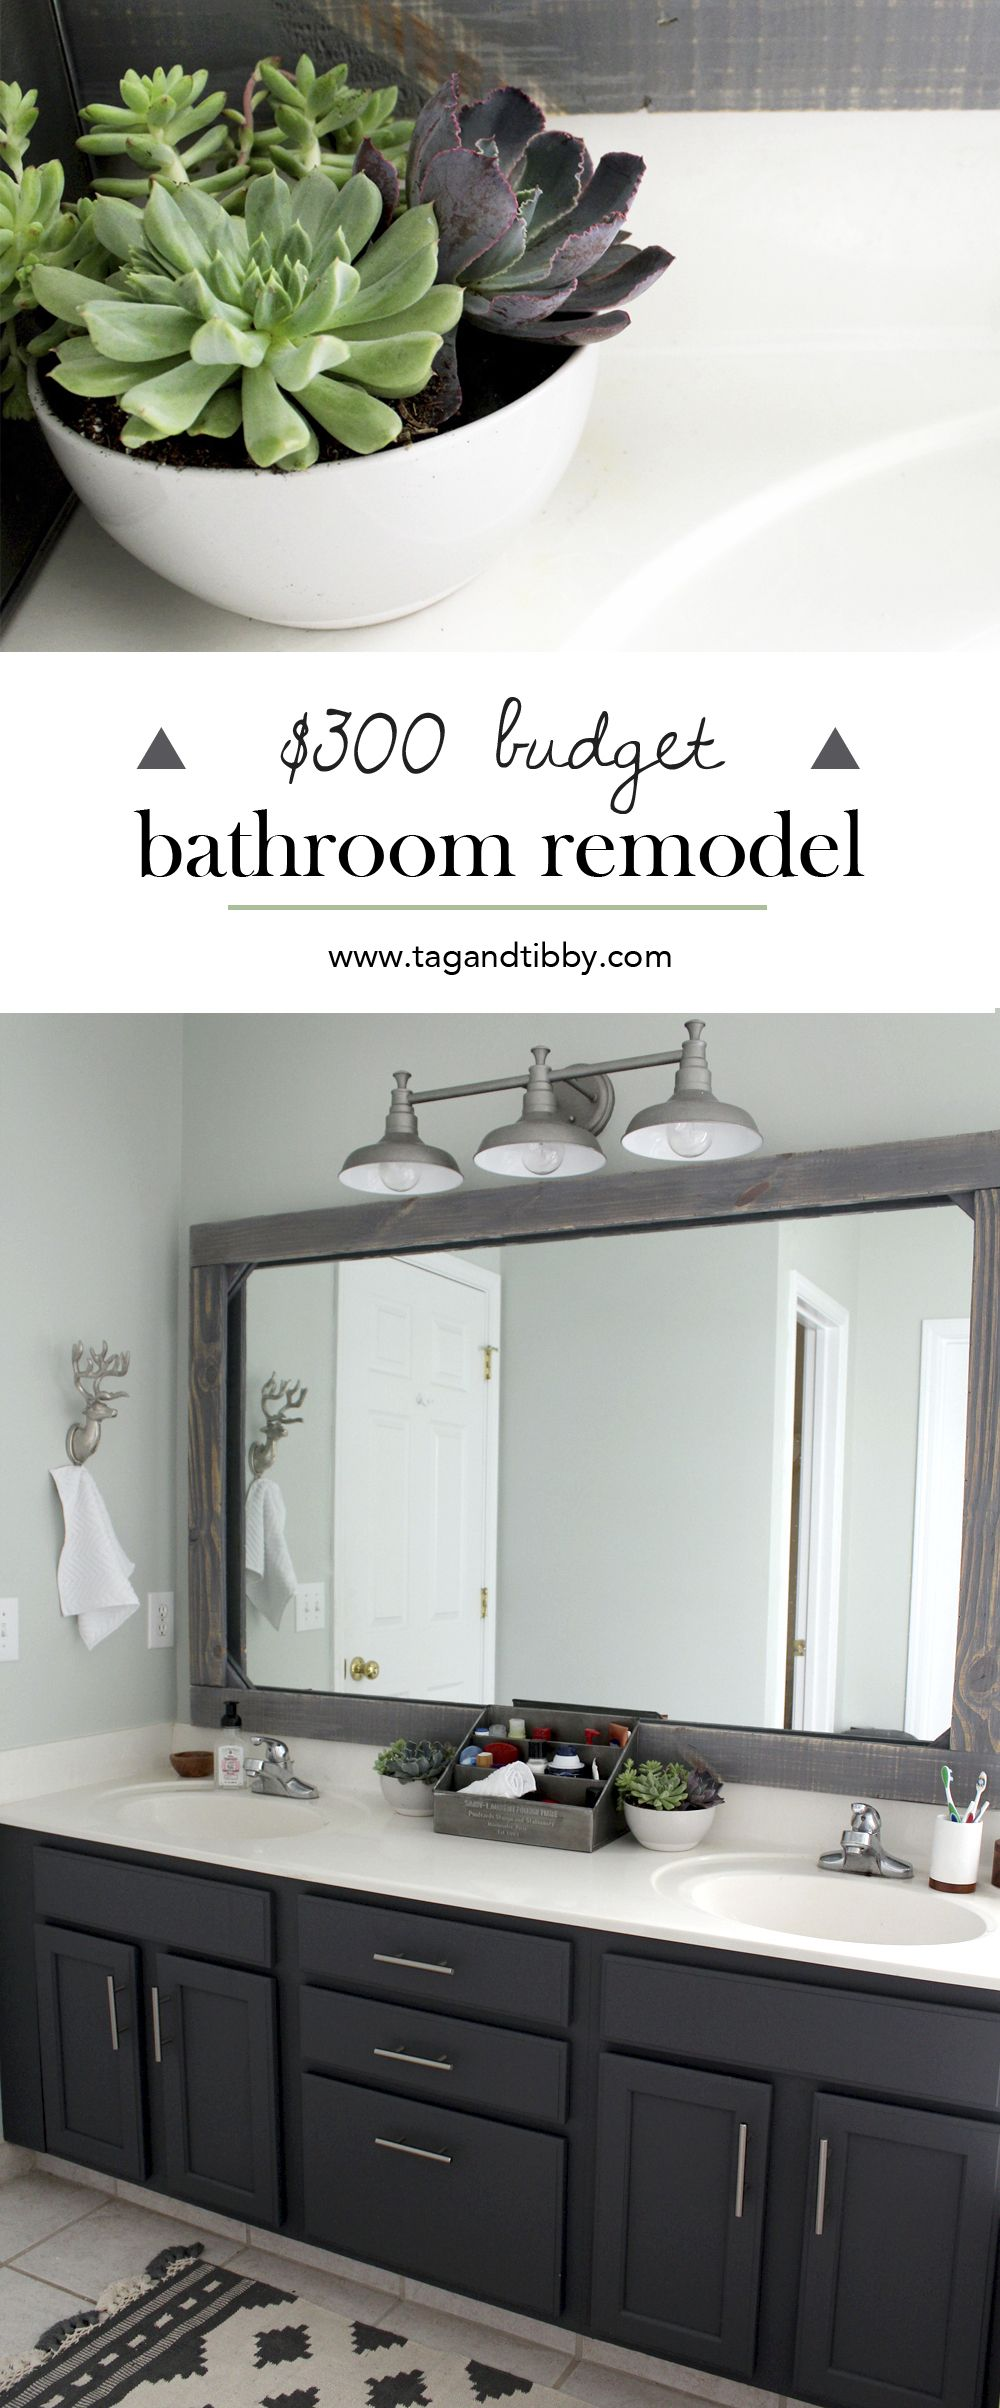 $300 Master Bathroom Remodel | Sw sea salt, Sea salt and Check on gray chicken, gray pumpkin, gray apples, pj salt,